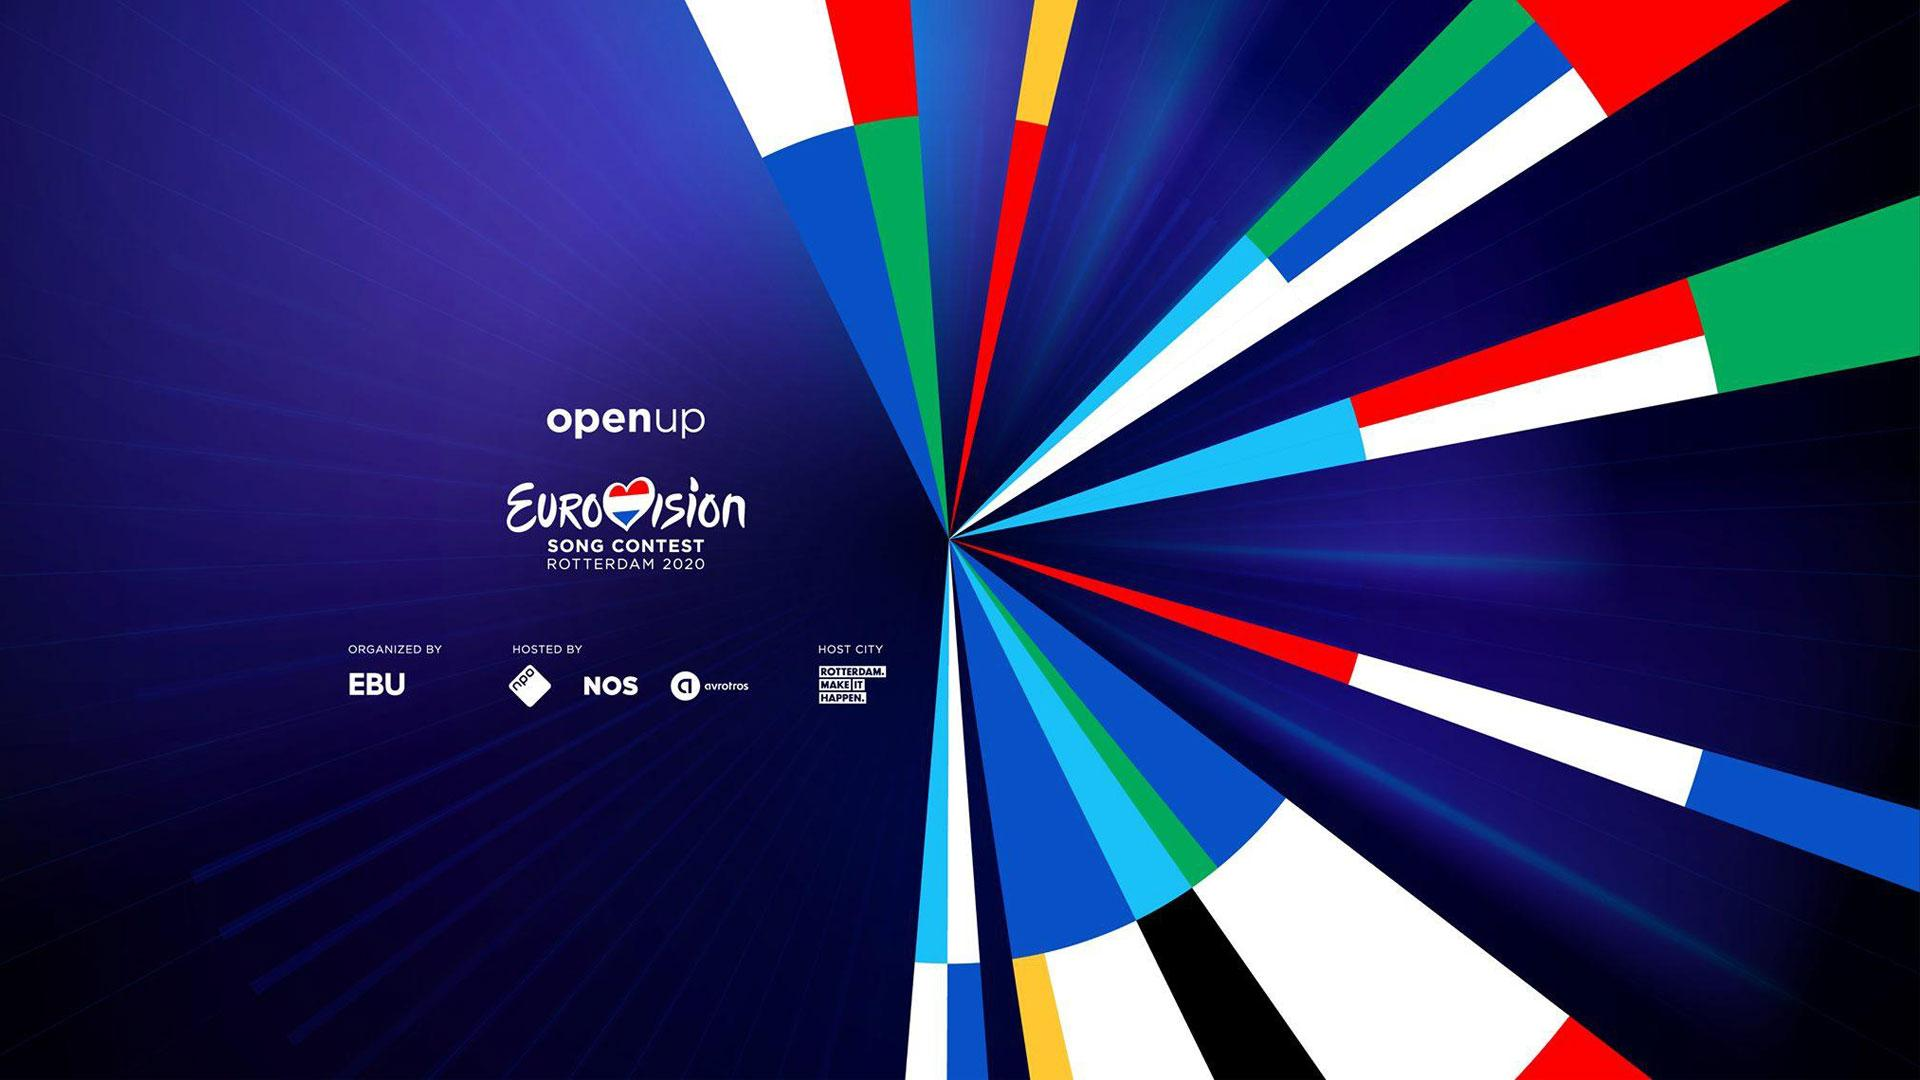 Second wave ticket sales Eurovision Song Contest 2020 starts January 30 at 12 noon